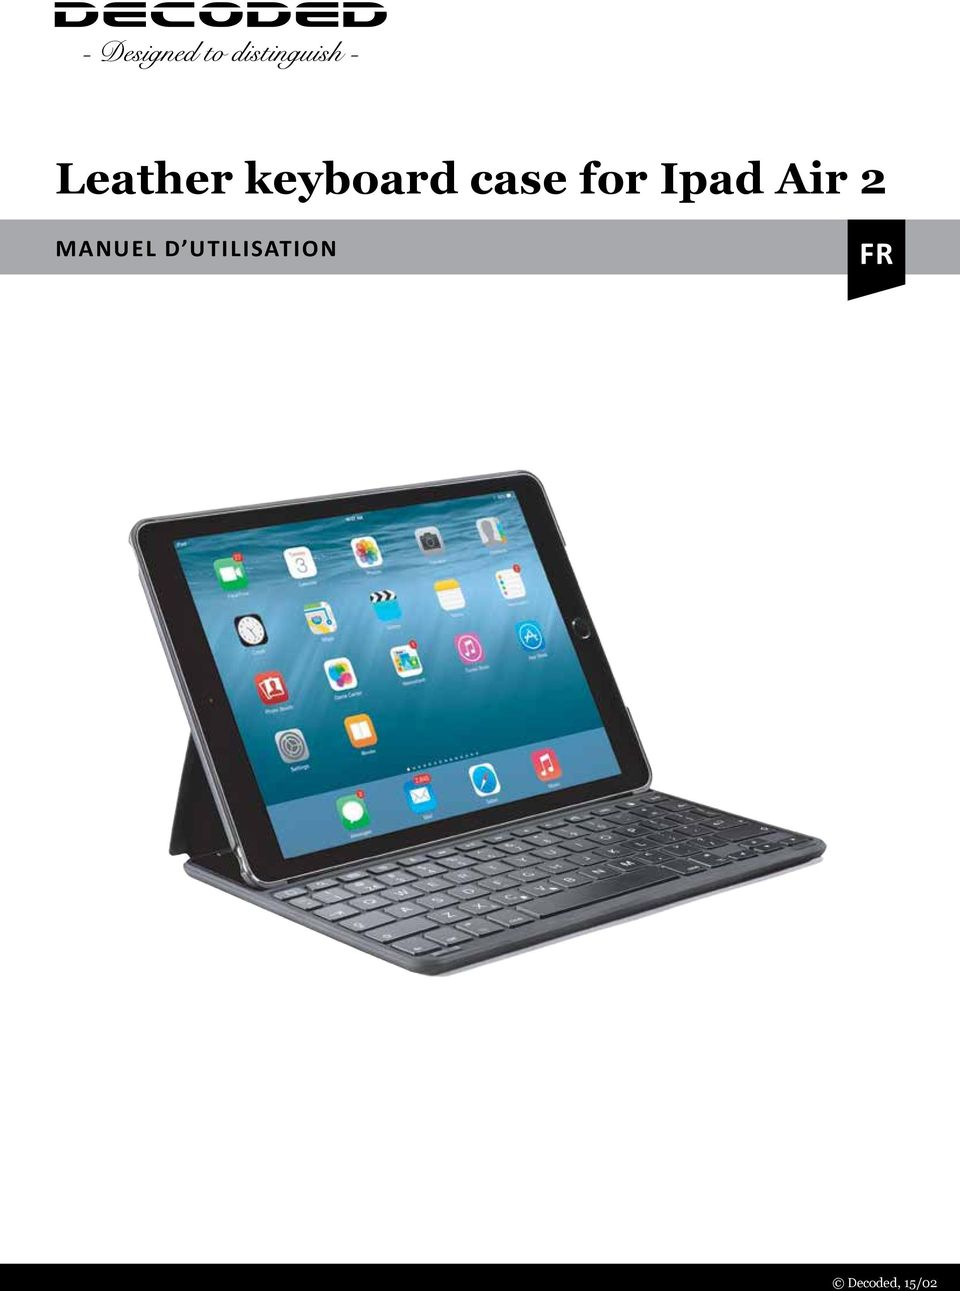 how to save a word document on ipad air